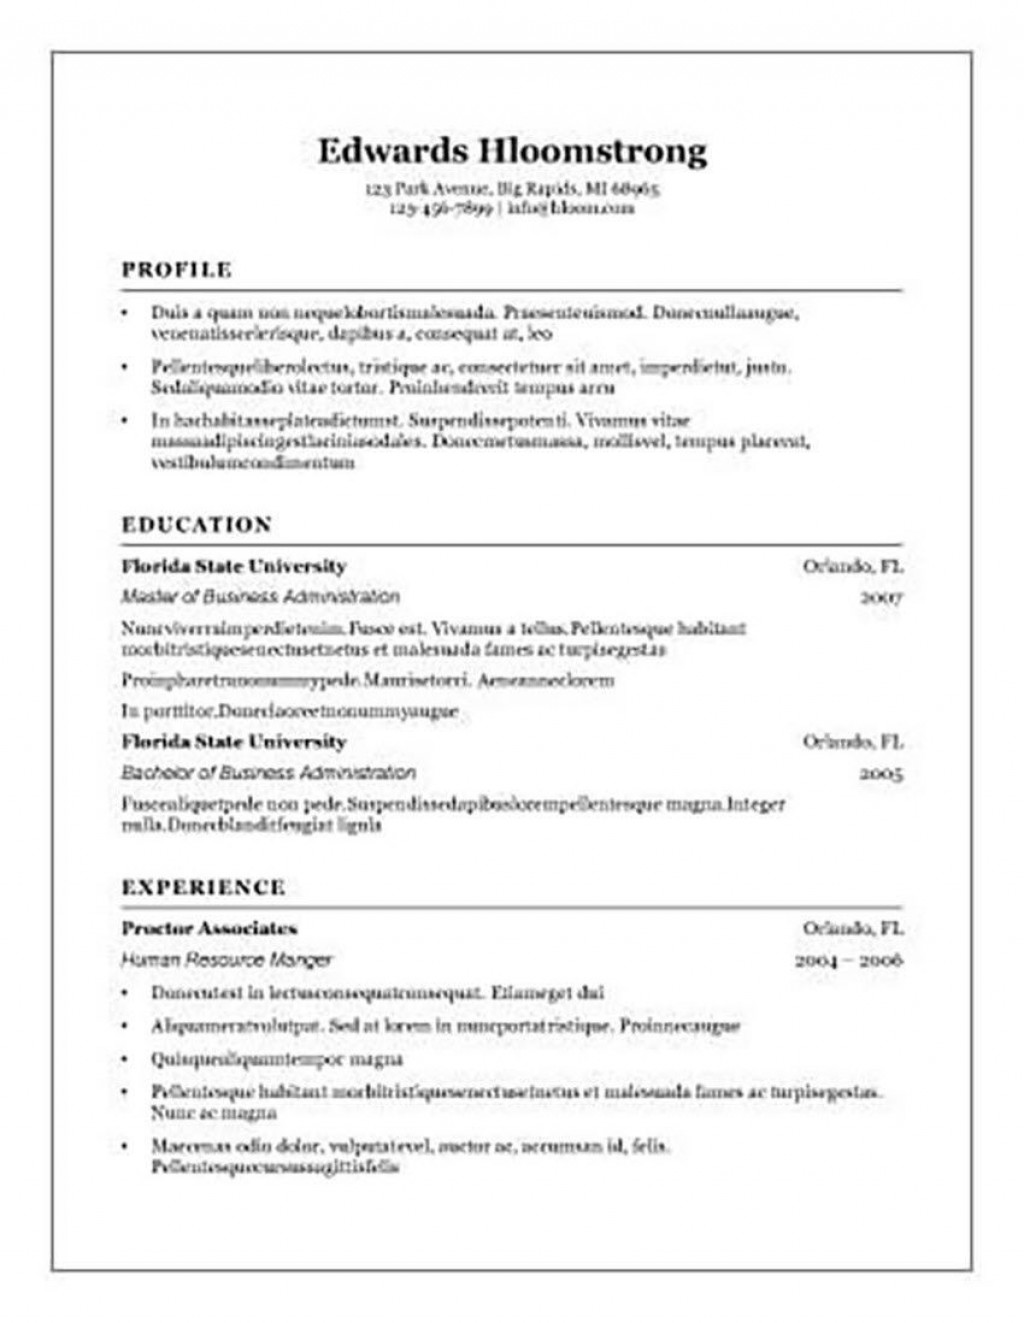 002 Beautiful Basic Resume Template Word High Definition  Free Download 2020Large